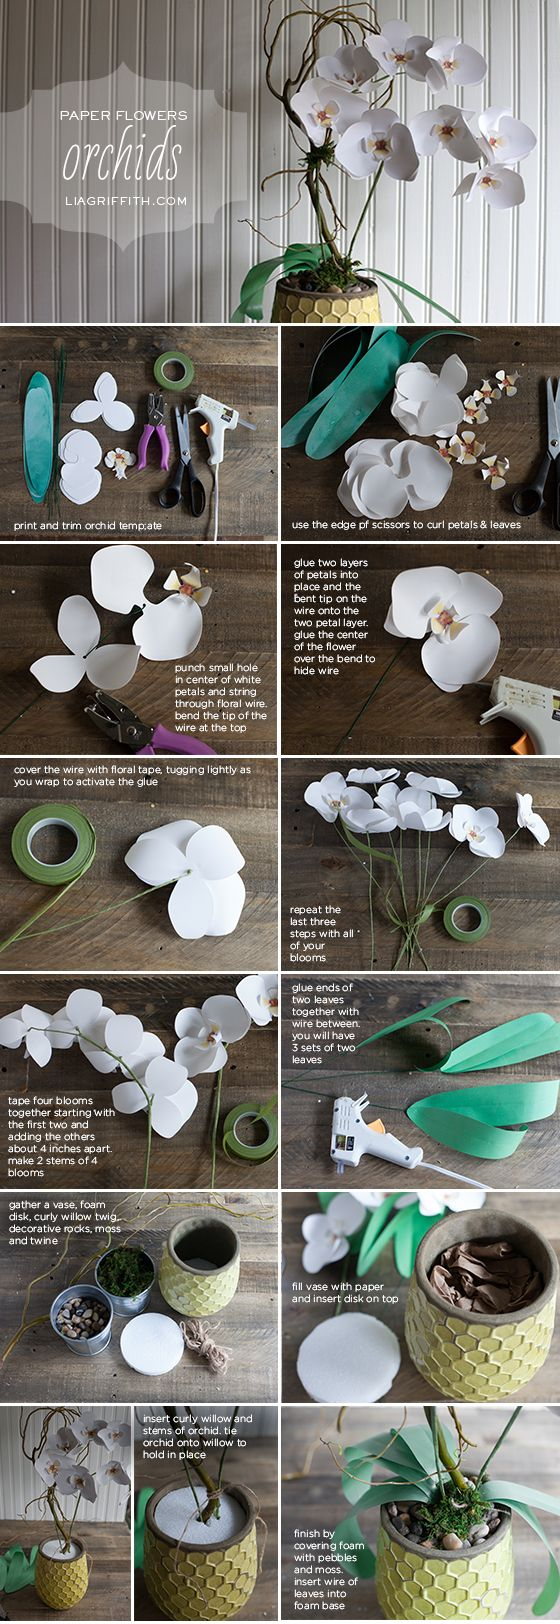 Paper Orchid Tutorial: